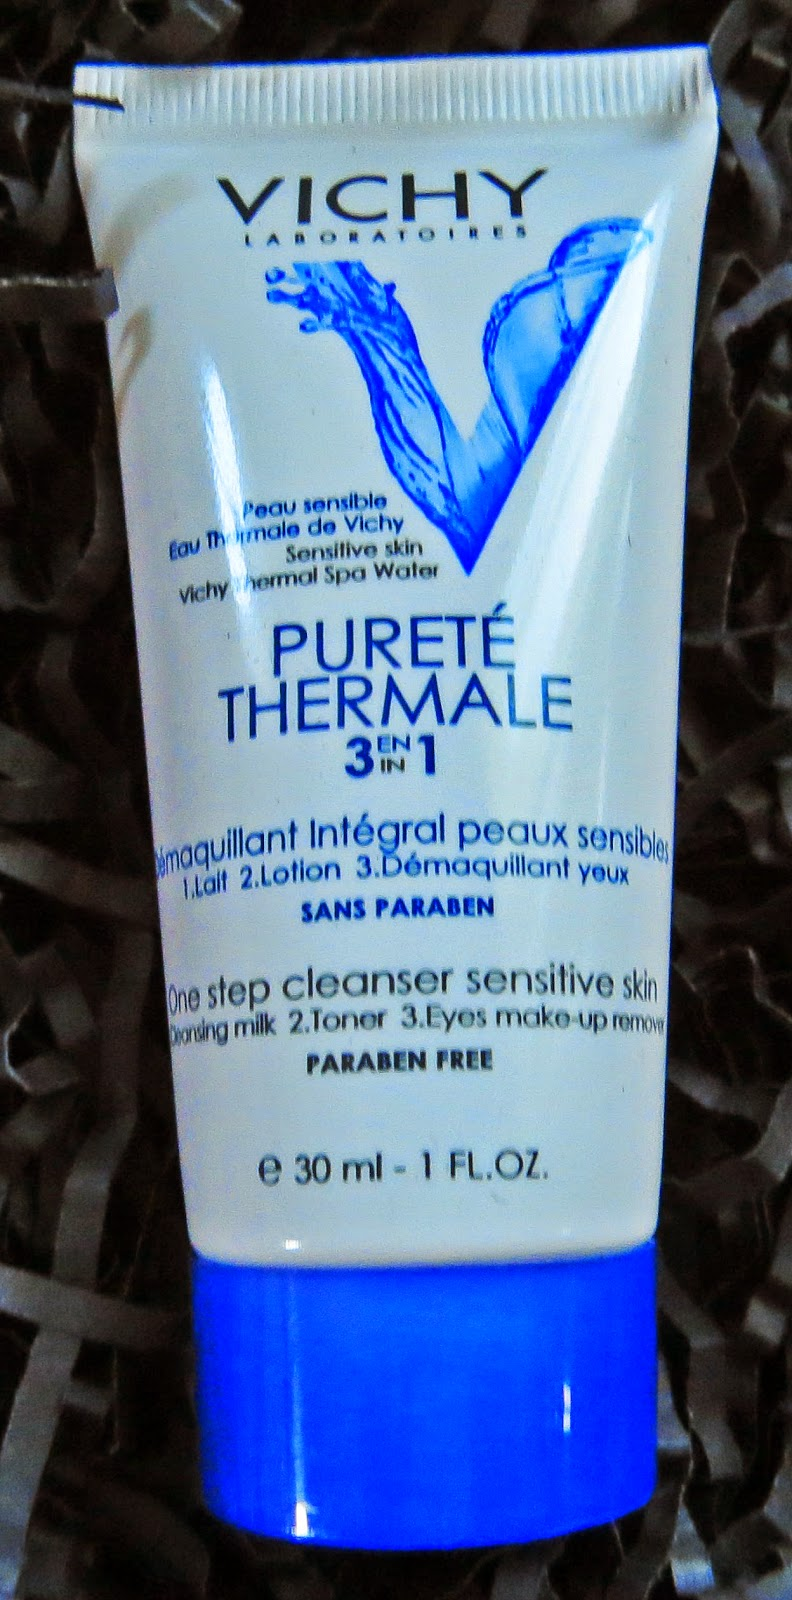 Vichy Purete Thermale 3-In-1 One Step Cleanser